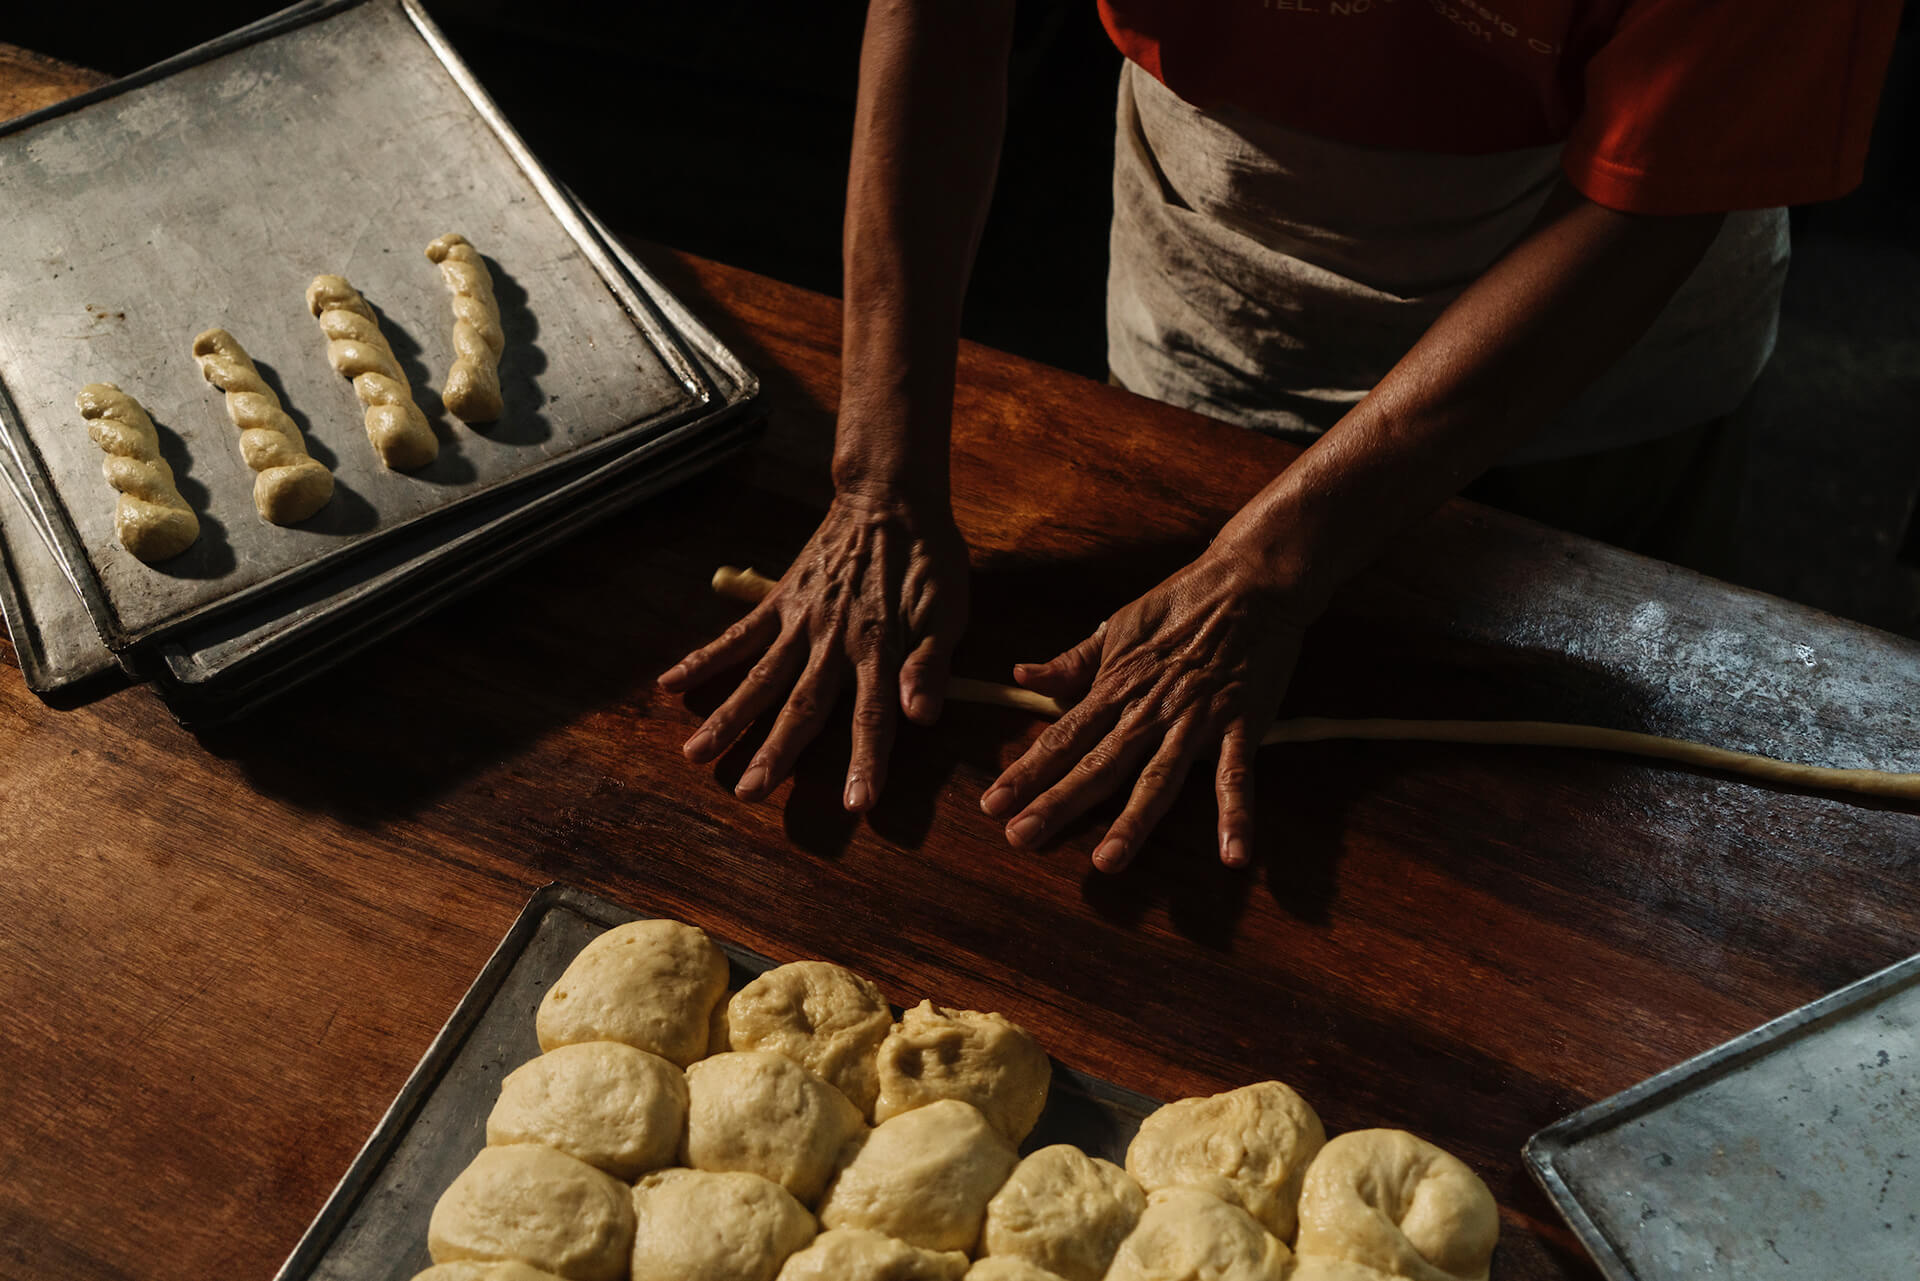 A baker at Panaderia Dimas-Alang shapes the dough for other baked goods